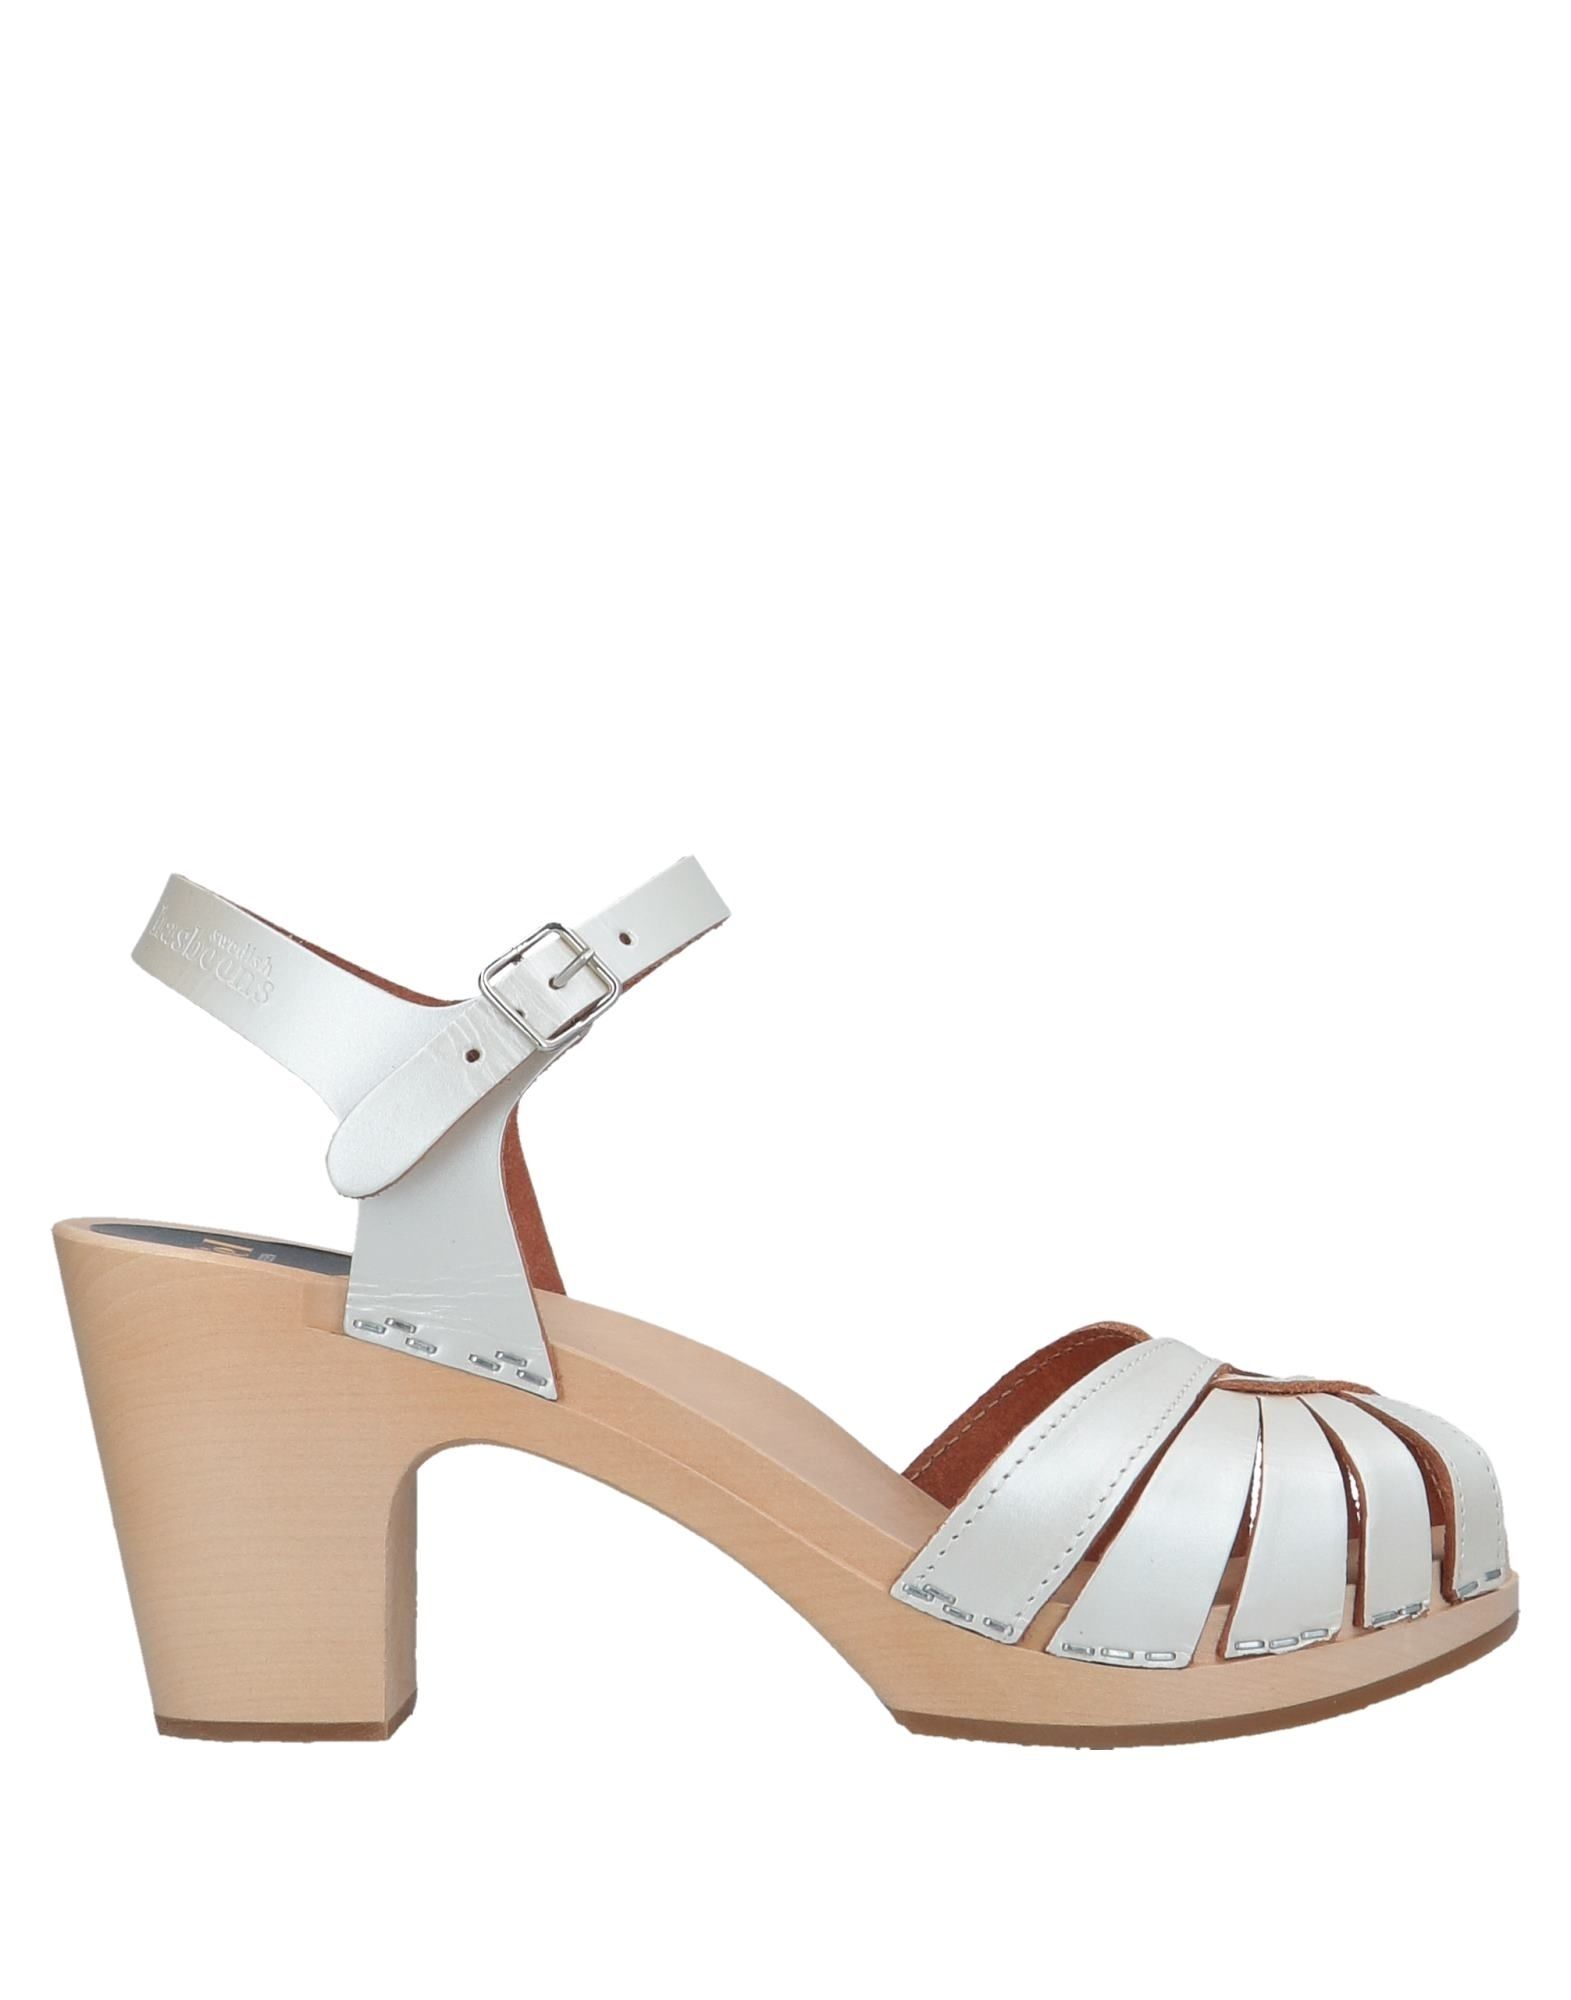 SWEDISH HASBEENS Sandals in Ivory